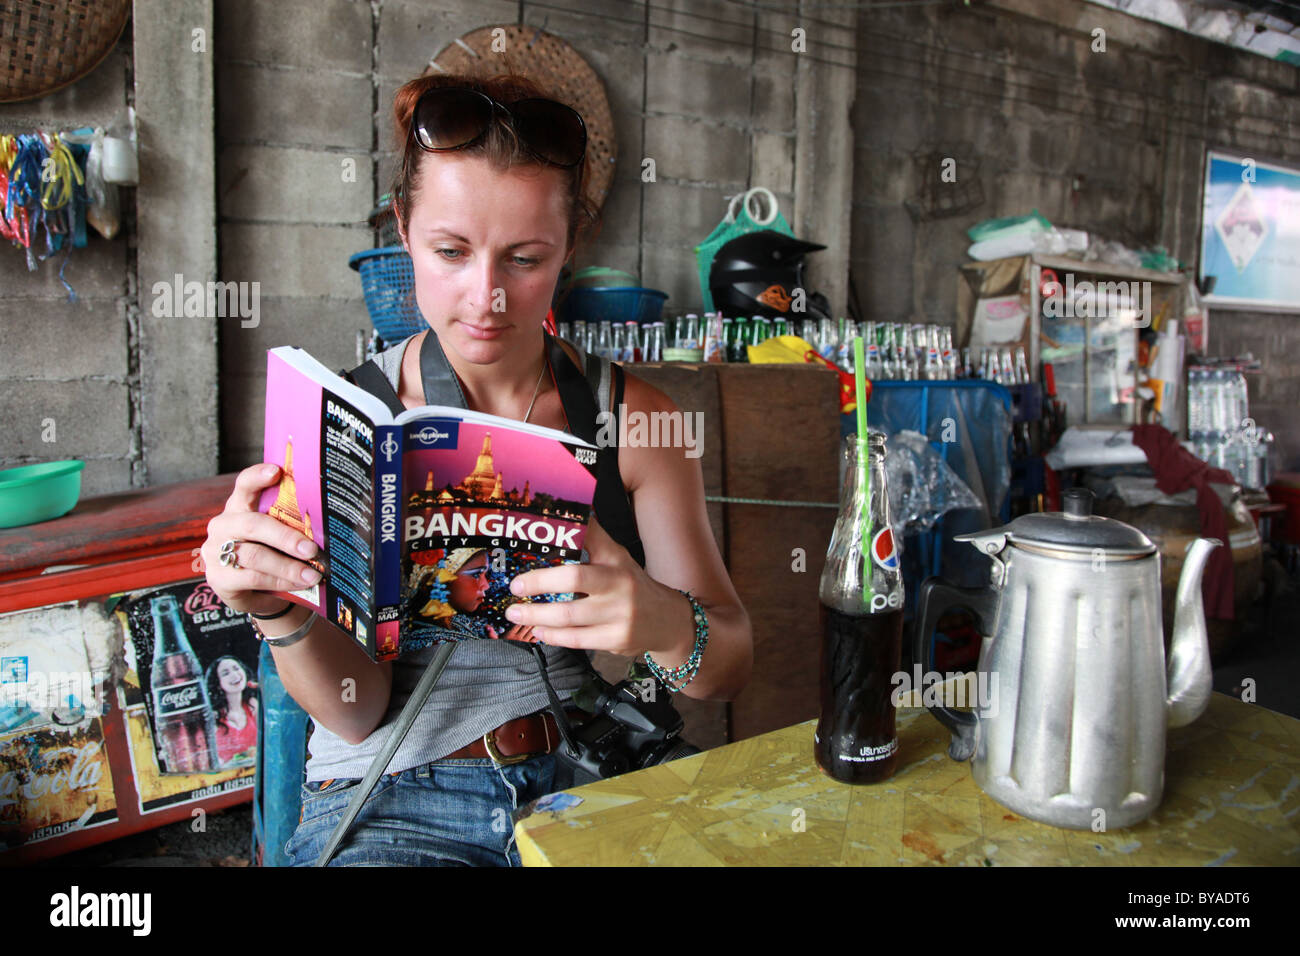 Female tourist reading Bangkok Guide book, in Thailand - Stock Image